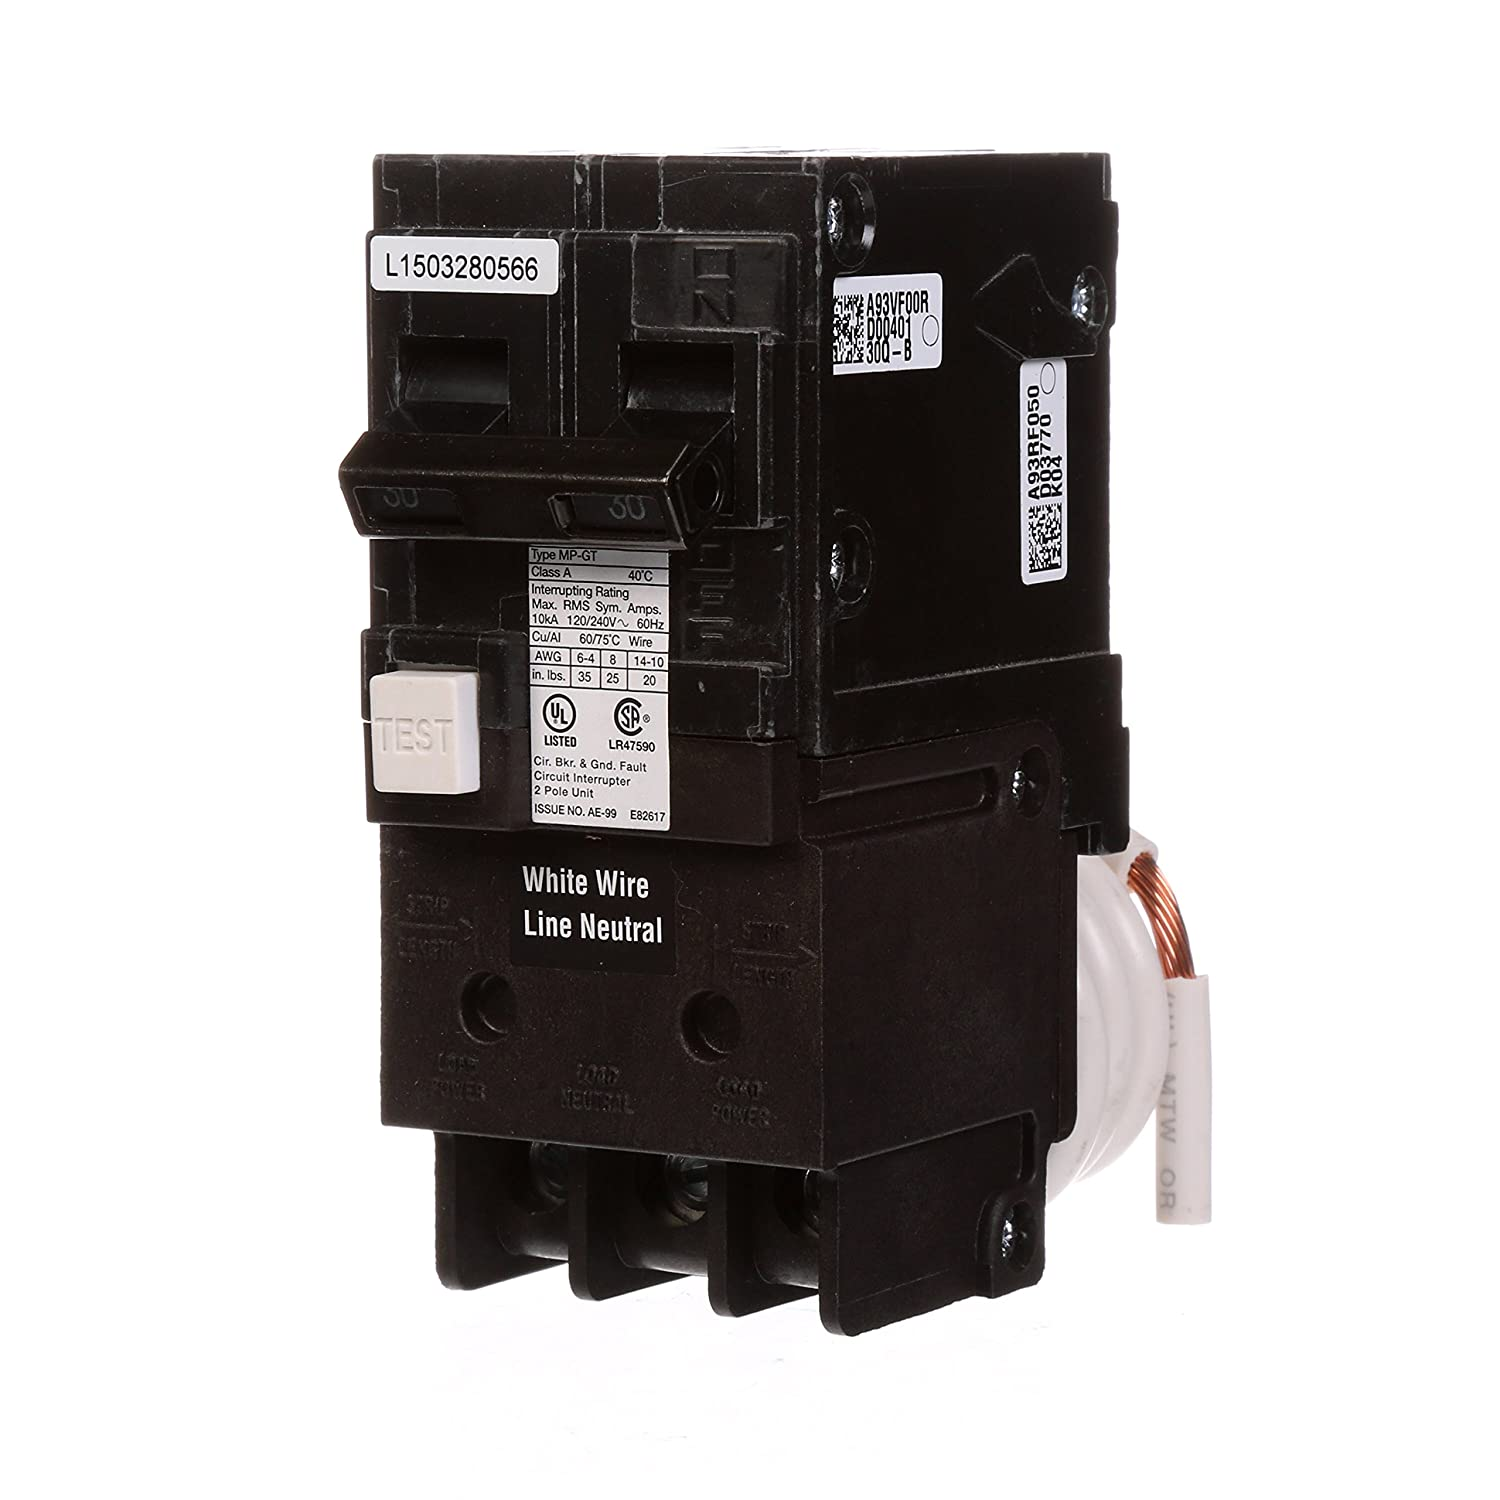 Murray MP230GFA 30 Amp 2-Pole GFCI Circuit Breaker with Self Test & Lockout Feature Siemens